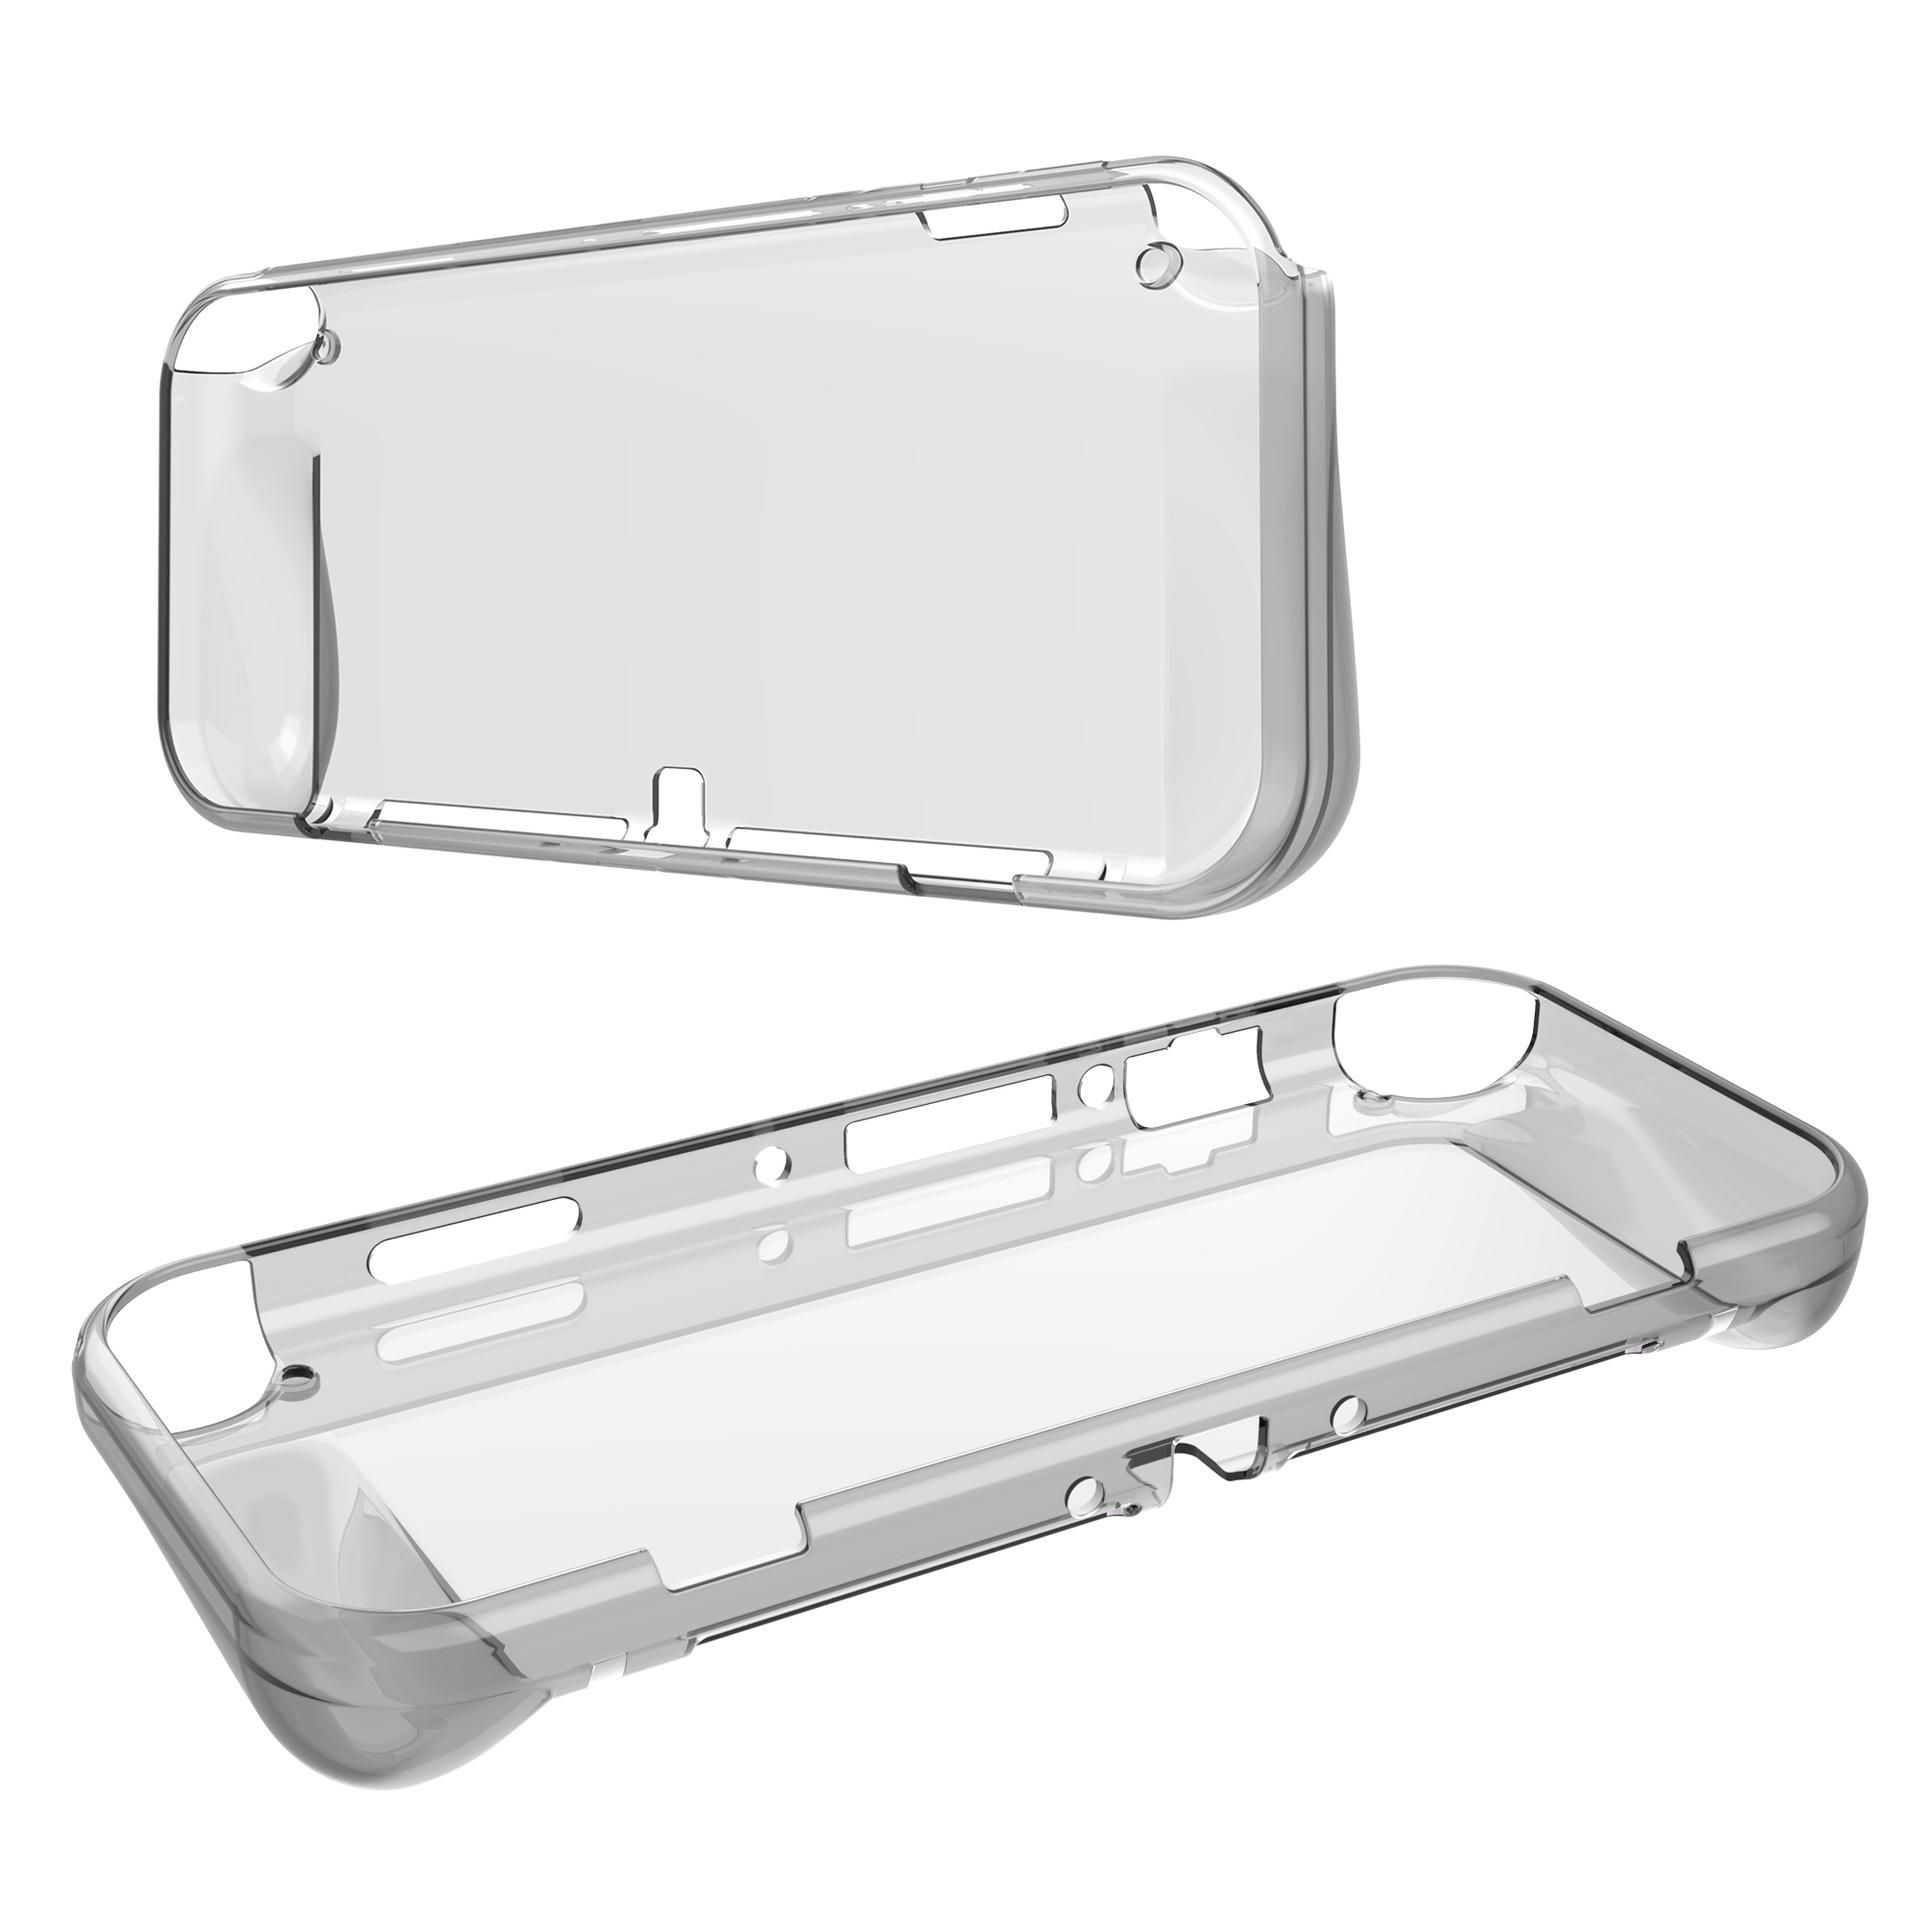 Clear TPU Soft Case Cover for Nintendo Switch OLED 30PCS/LOT SIMPLE OPP